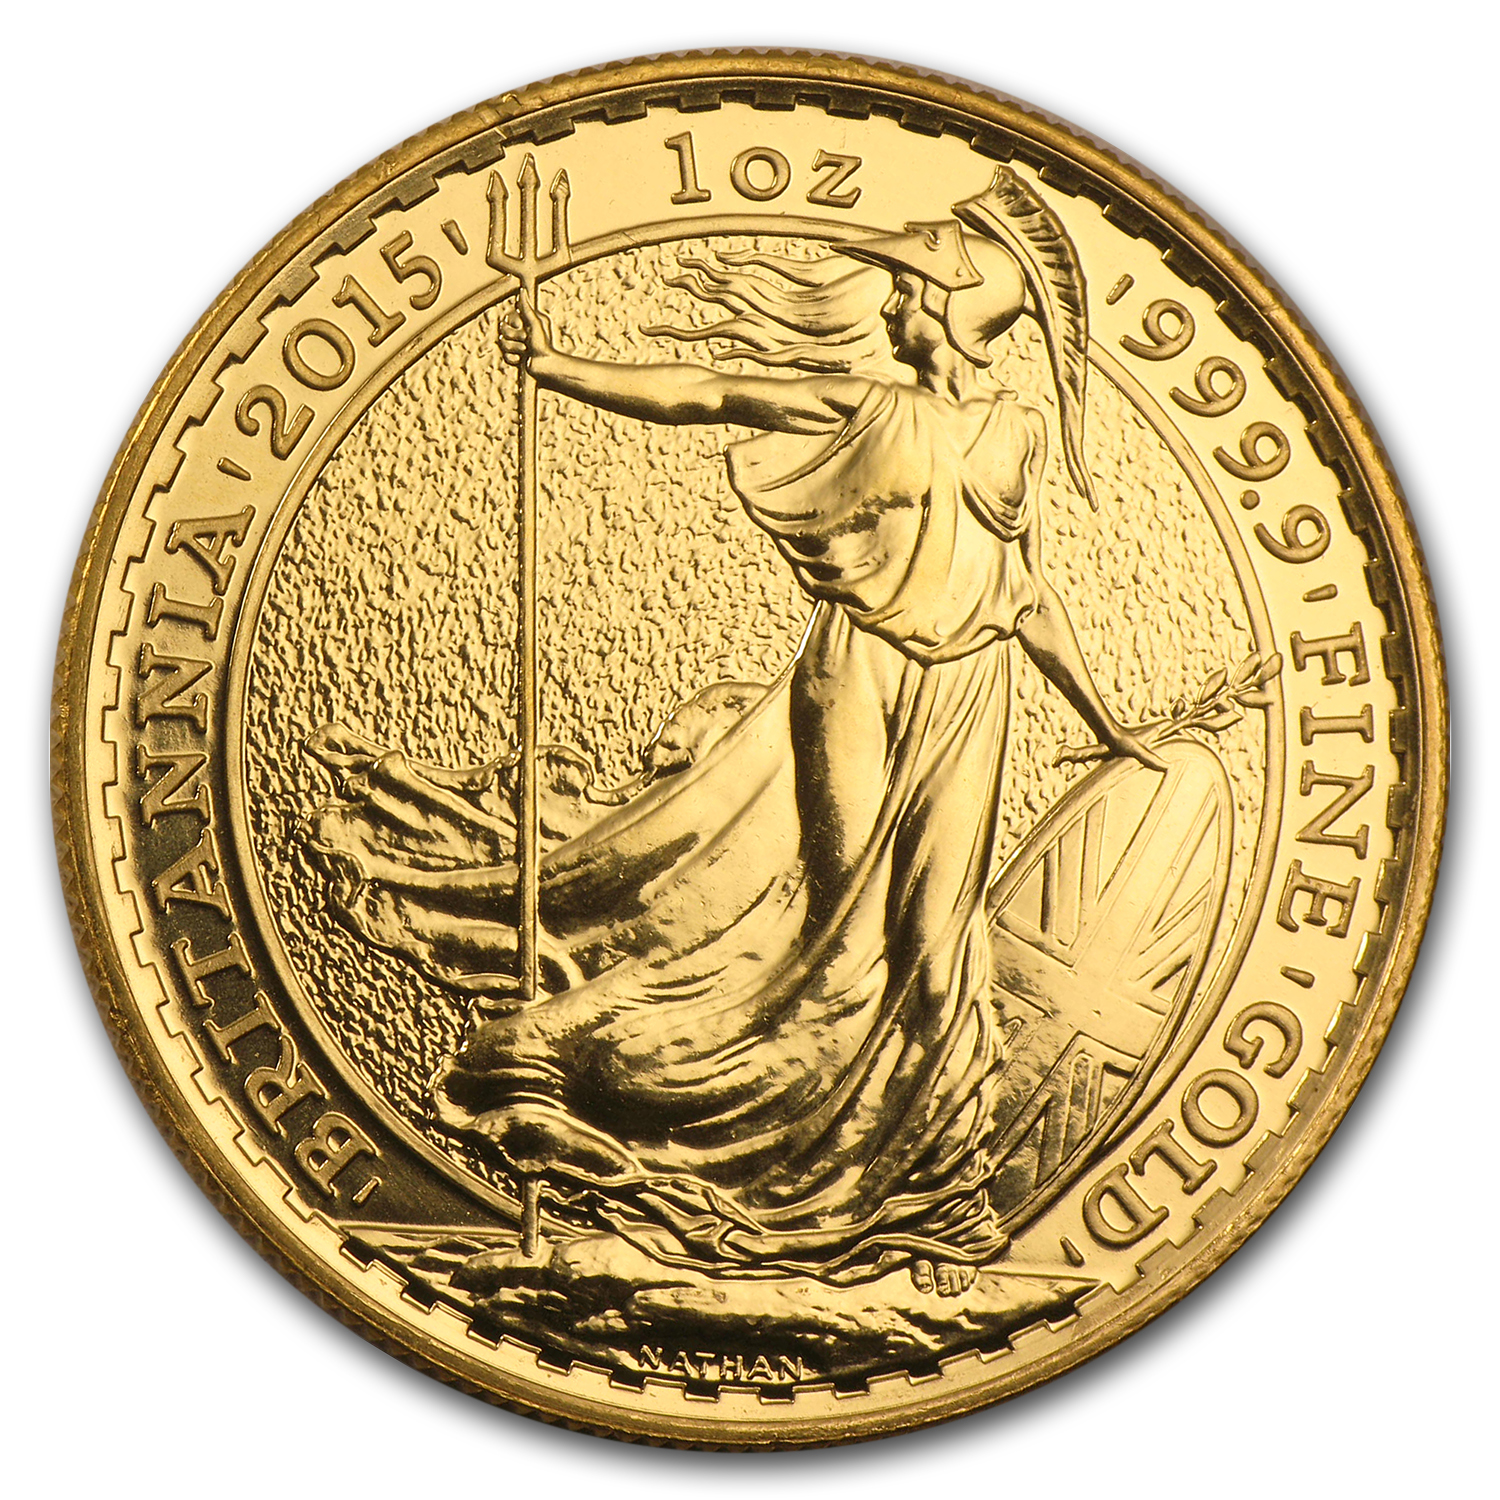 2015 Great Britain Gold 1 oz Britannia (Abrasions)